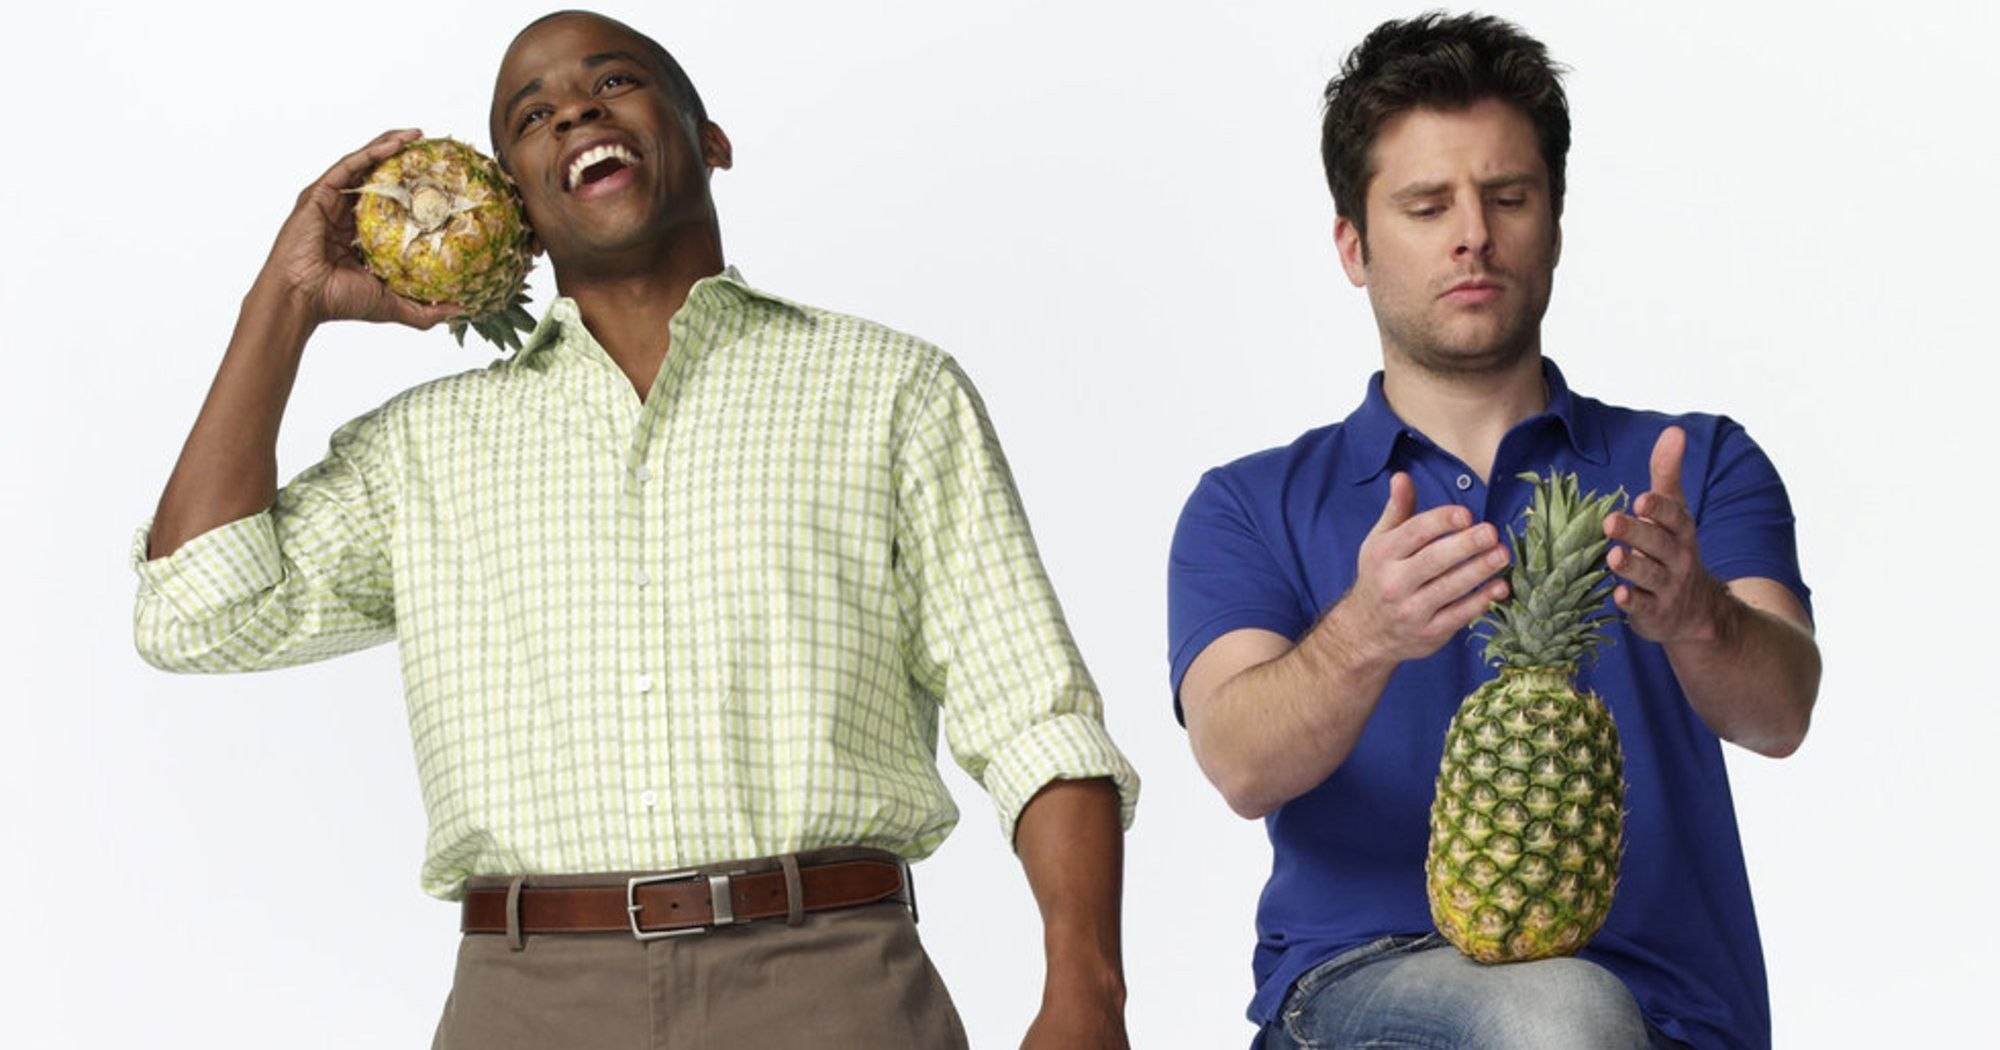 Psych: The 5 Best (And 5 Worst) Episodes | ScreenRant